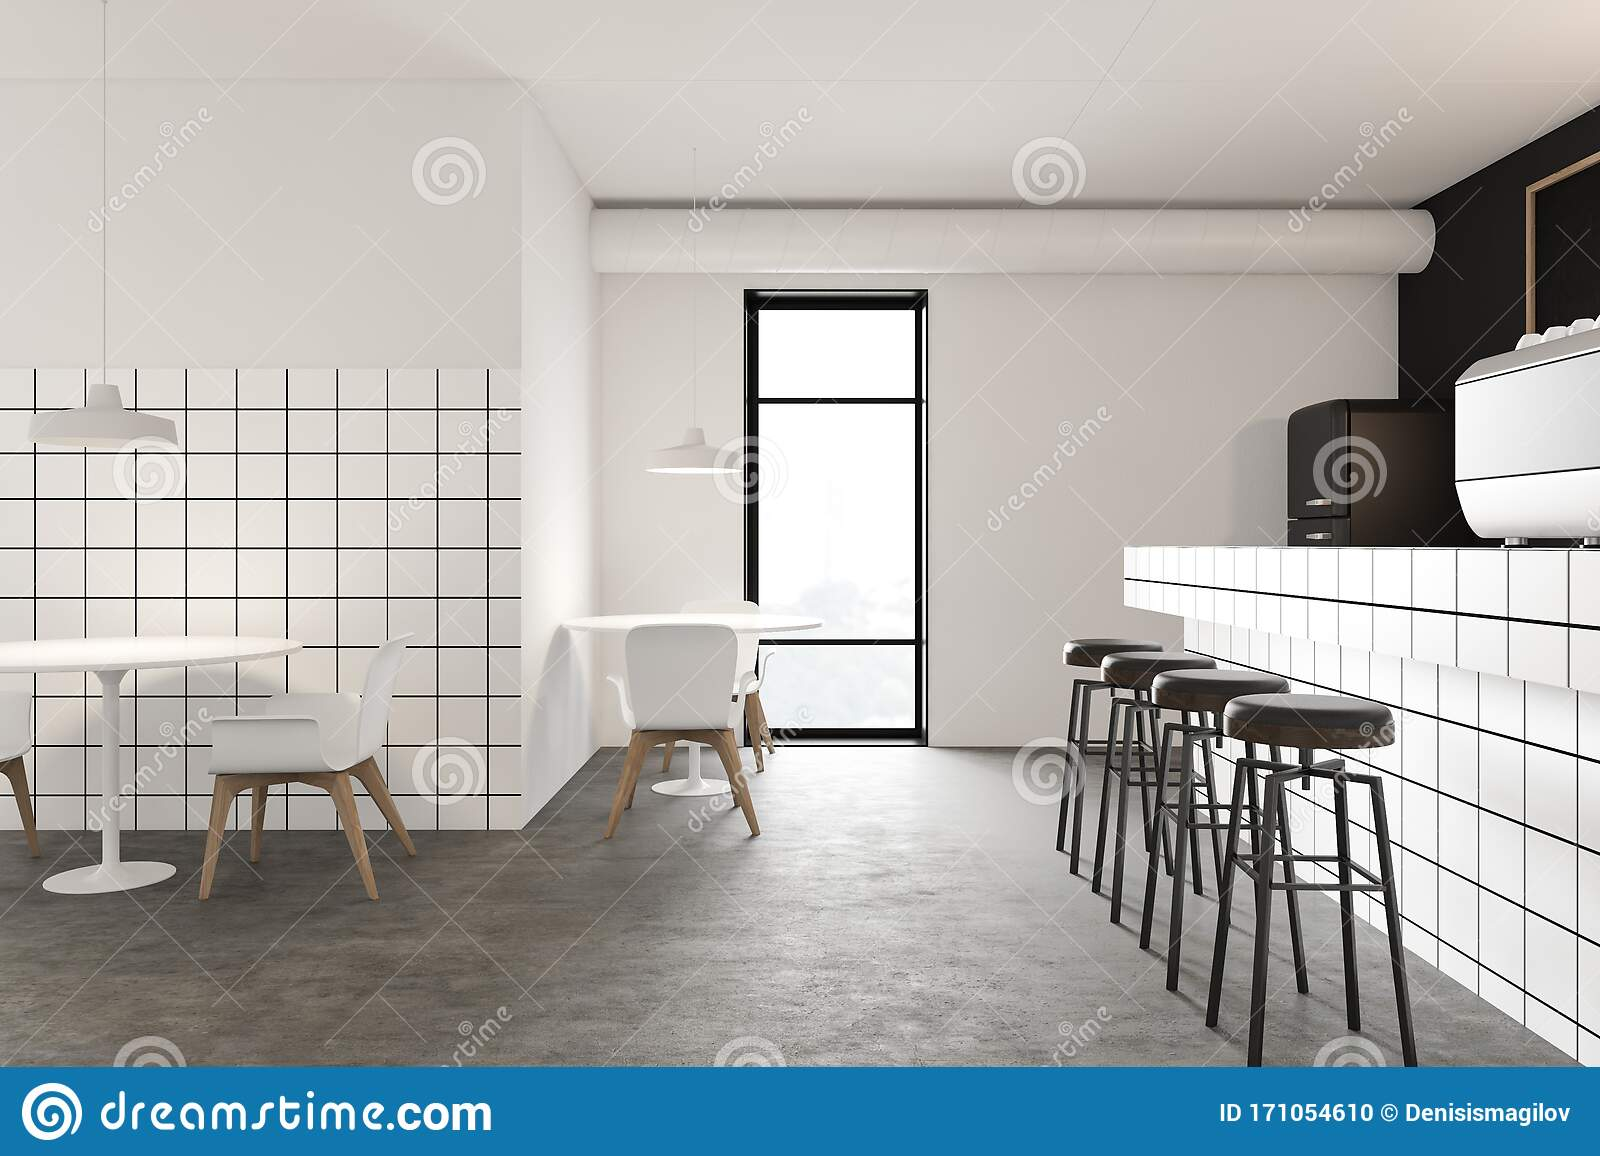 Black And White Restaurant Interior With Bar Stock Illustration Illustration Of Decoration Brasserie 171054610